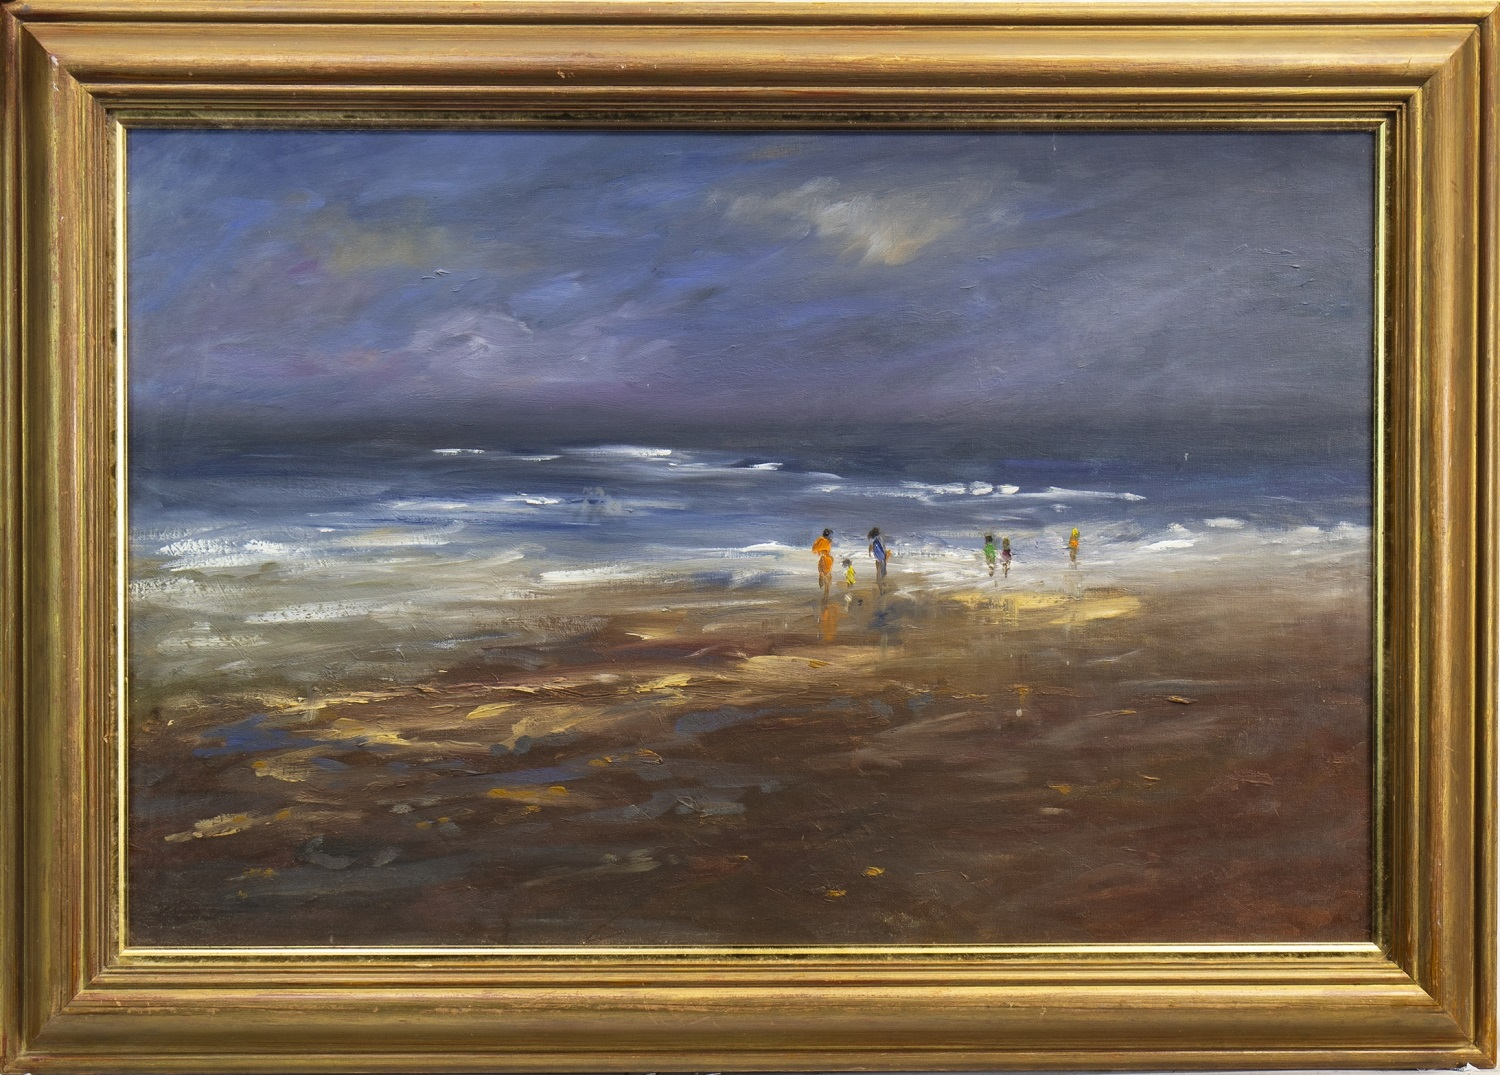 Lot 688 - SUMMER IN GALLOWAY, AN OIL BY ADRIENNE PERFECT